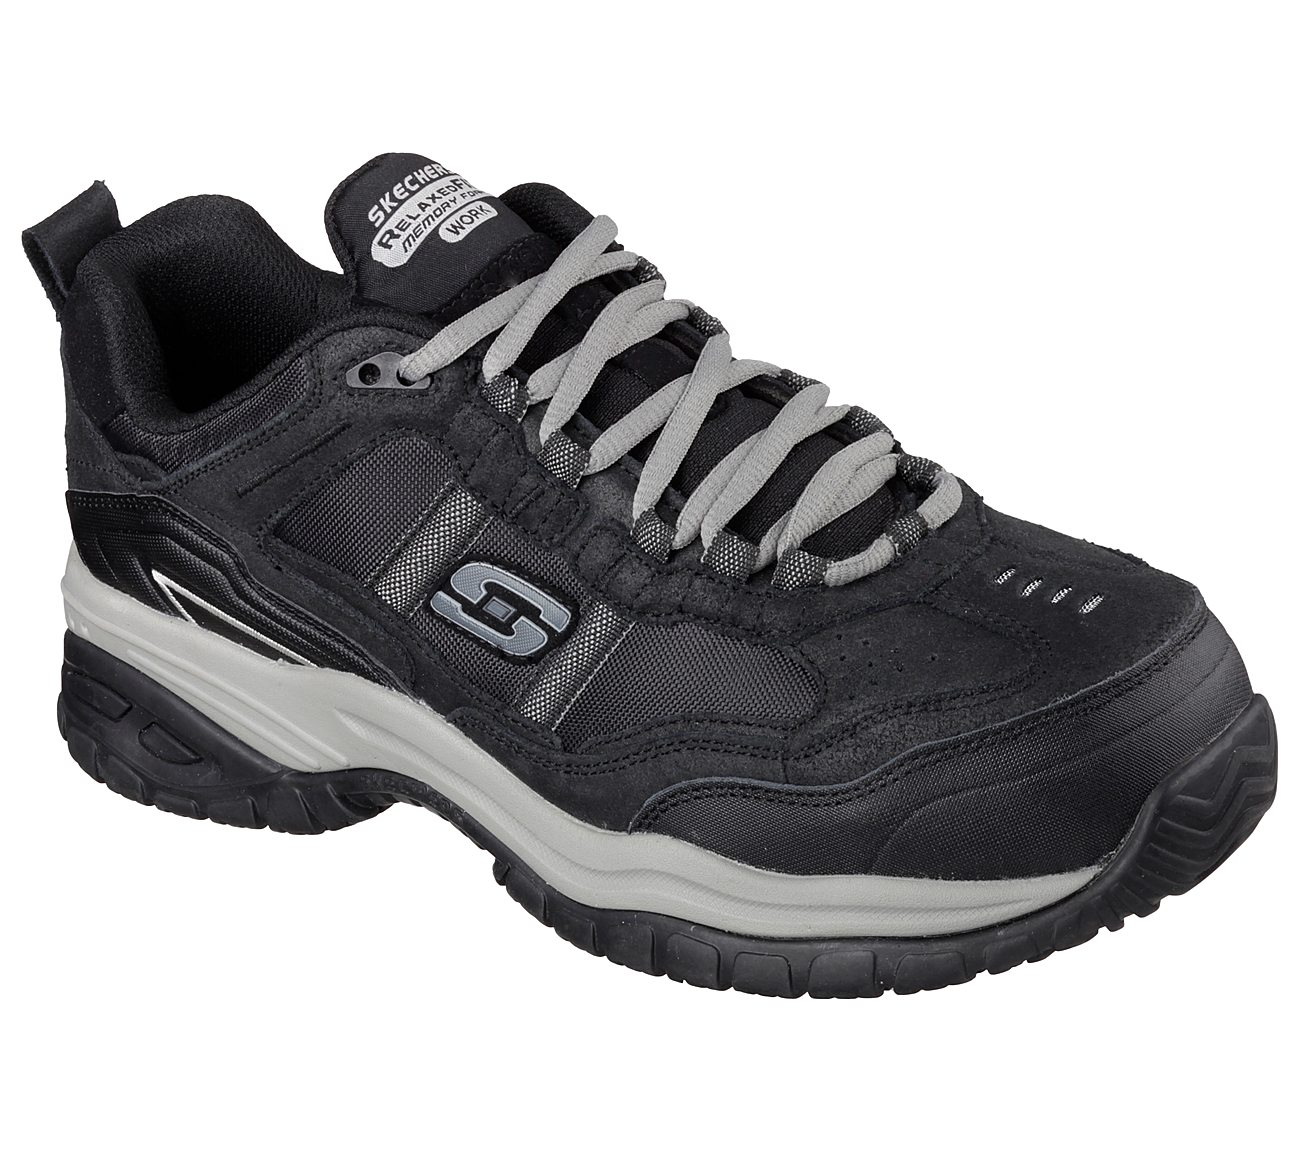 skechers shoes hover to zoom ekgoiev